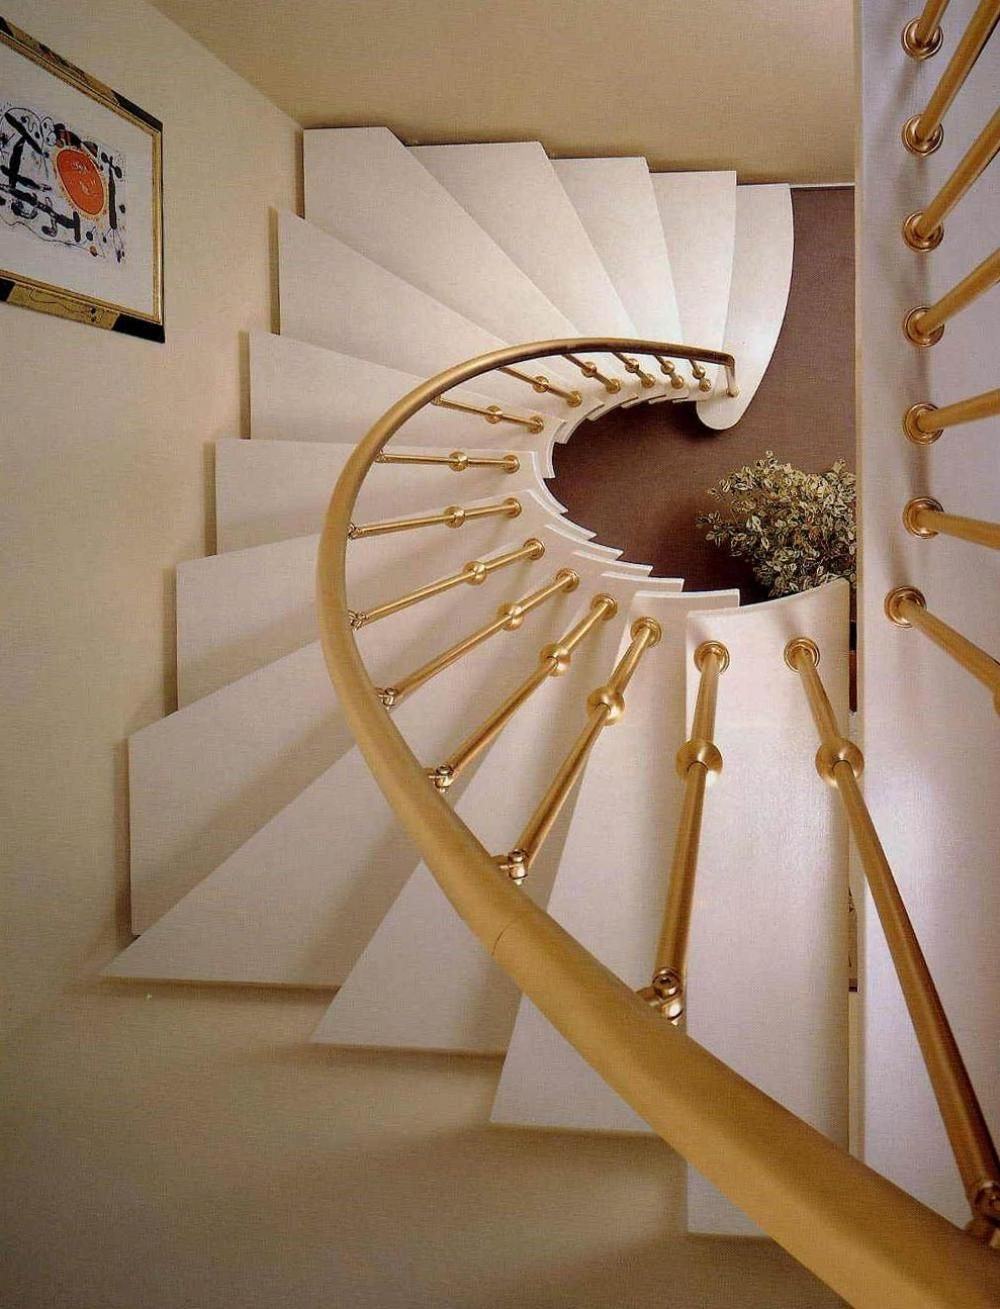 40 Breathtaking Spiral Staircases To Dream About Having In Your Home | Semi Spiral Staircase Design | Handrail | Inside | Semi Circular | Elegant | Residential Library